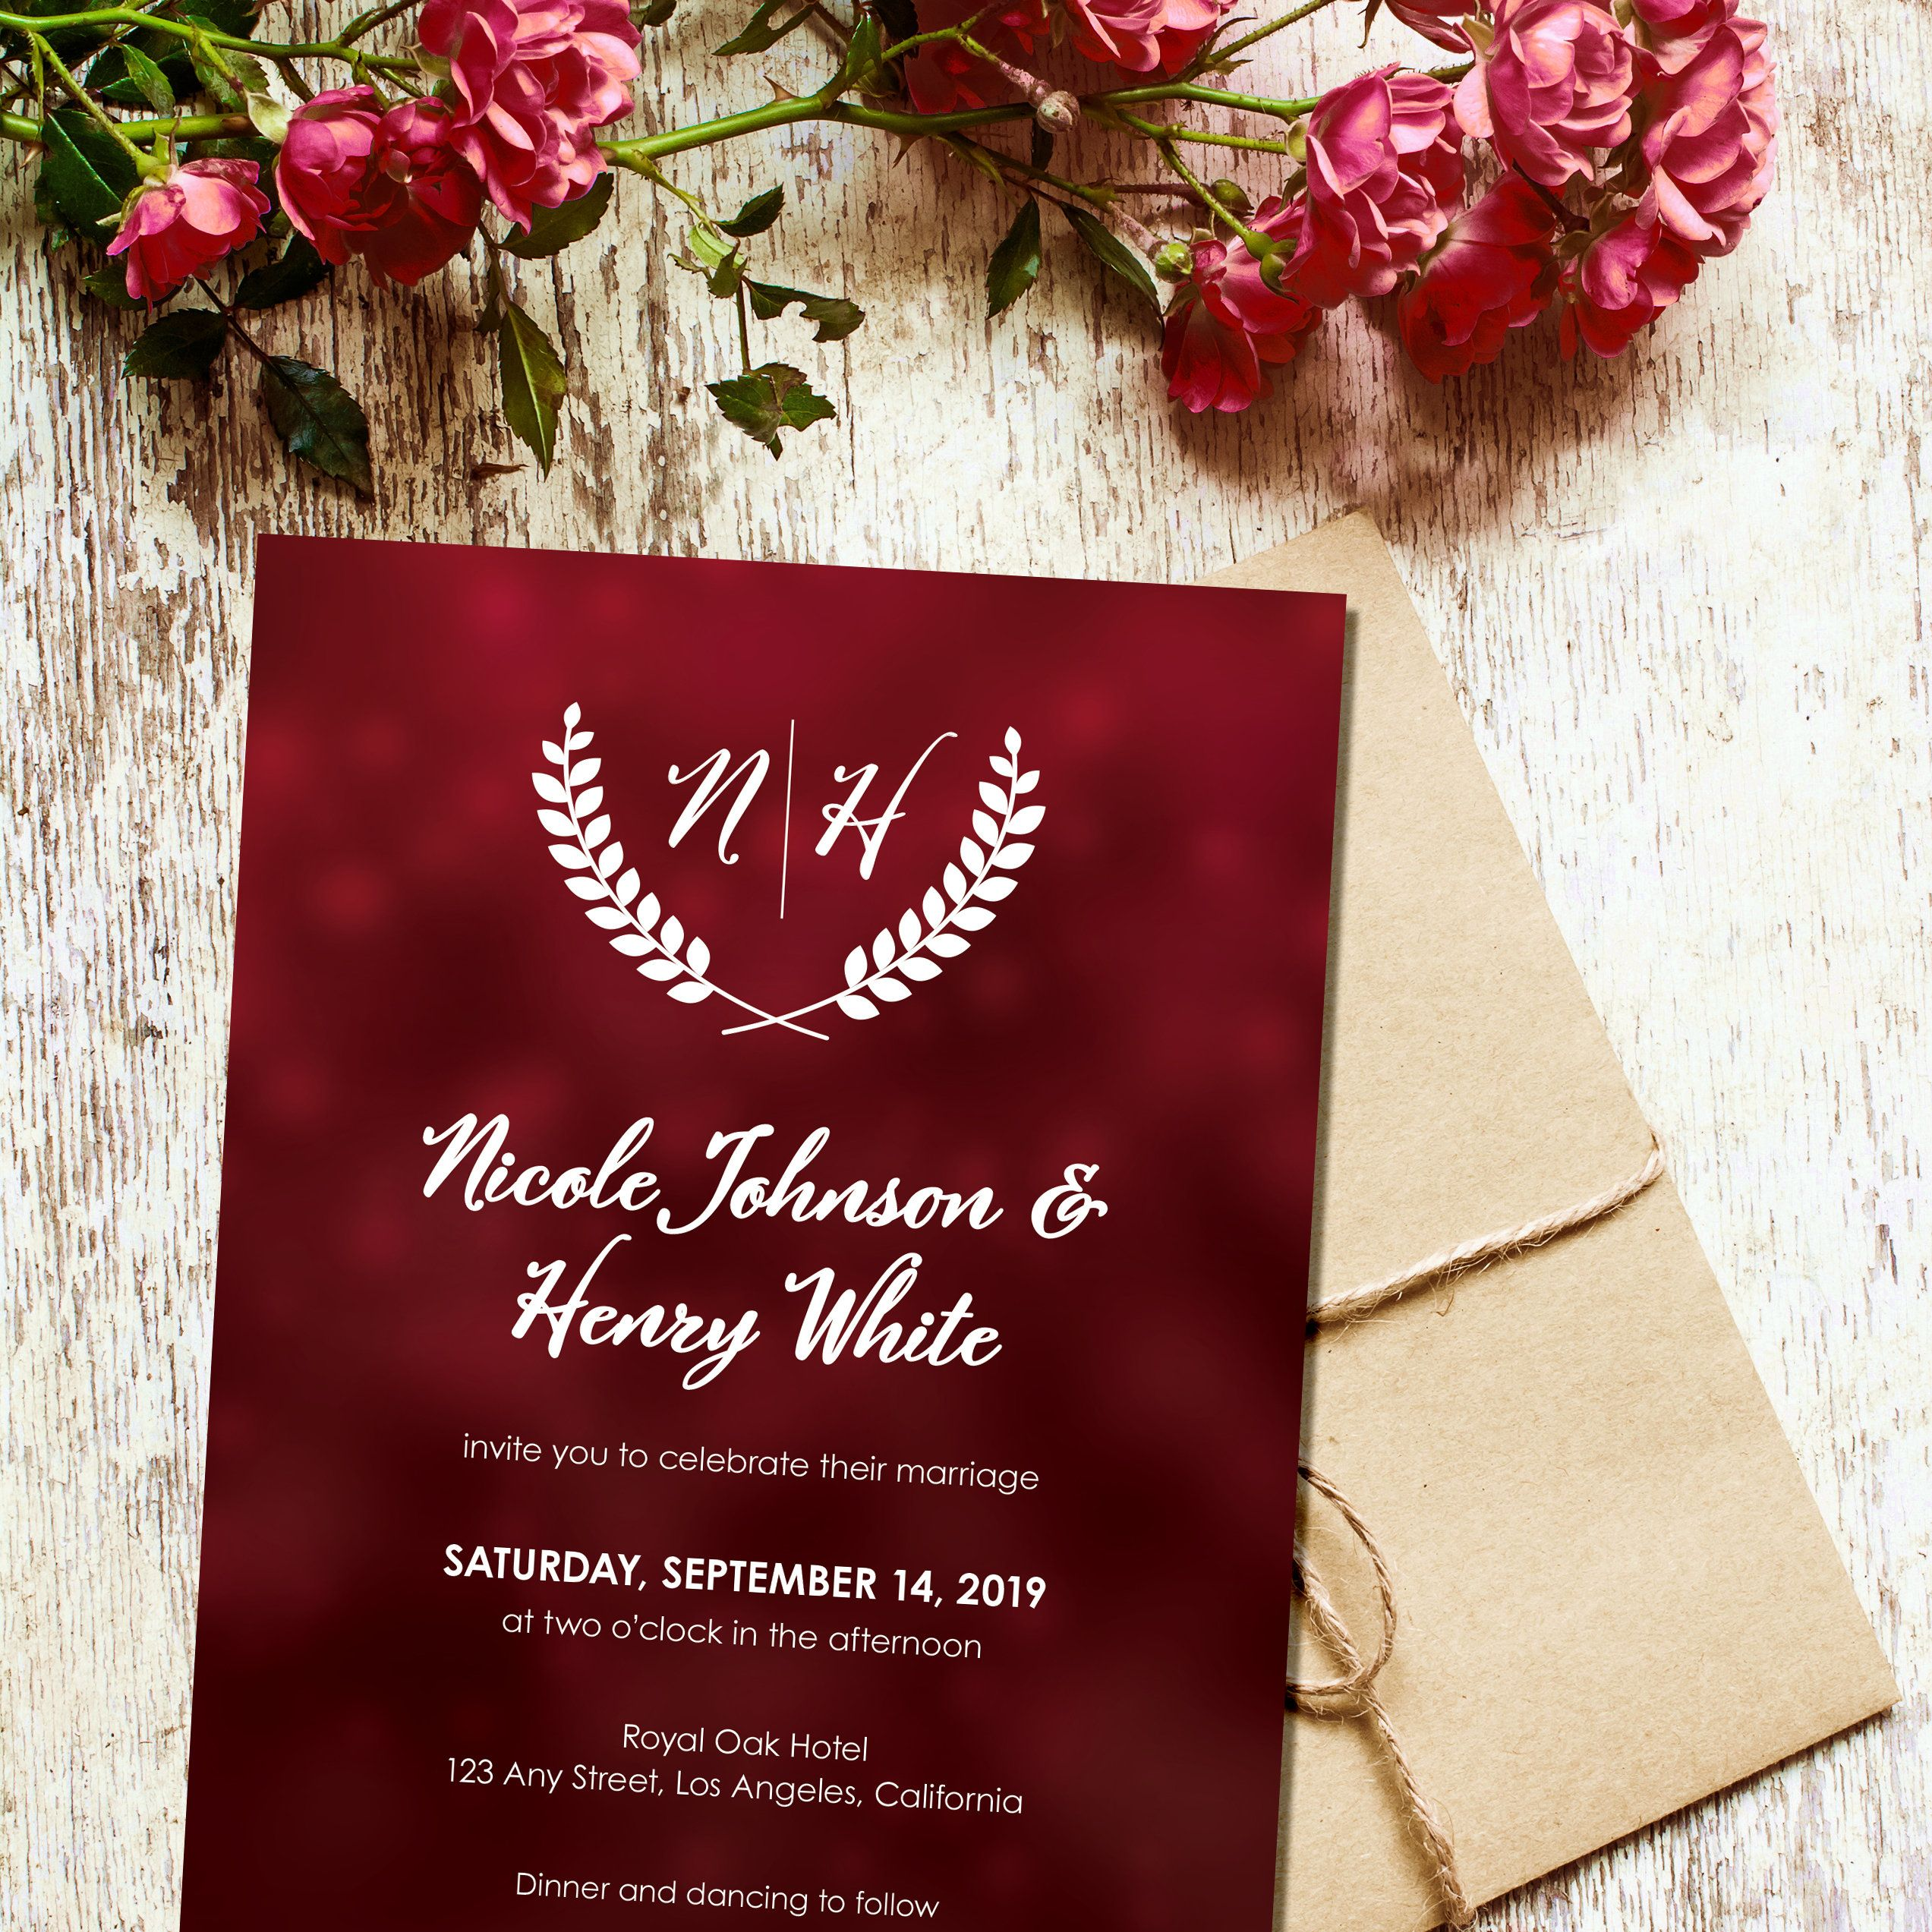 Red Wedding Invitation Template, Wedding Invites with Monogram